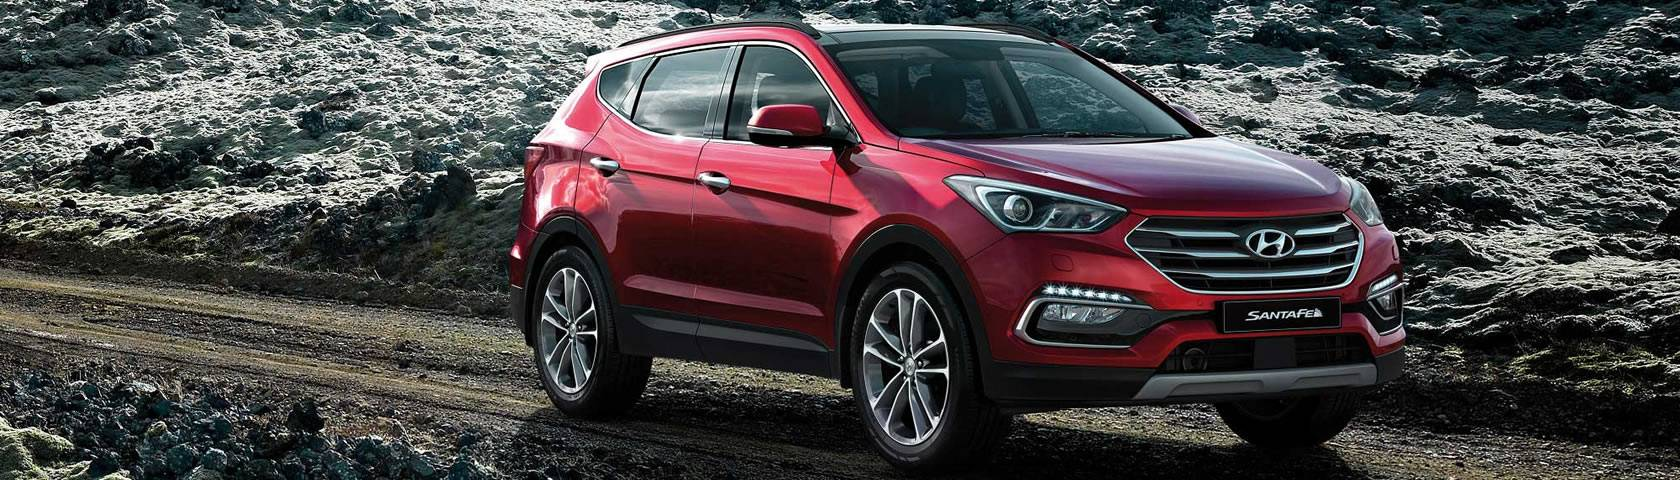 Contact us hyundai dealer artarmon nsw alto hyundai for Hyundai motor america phone number